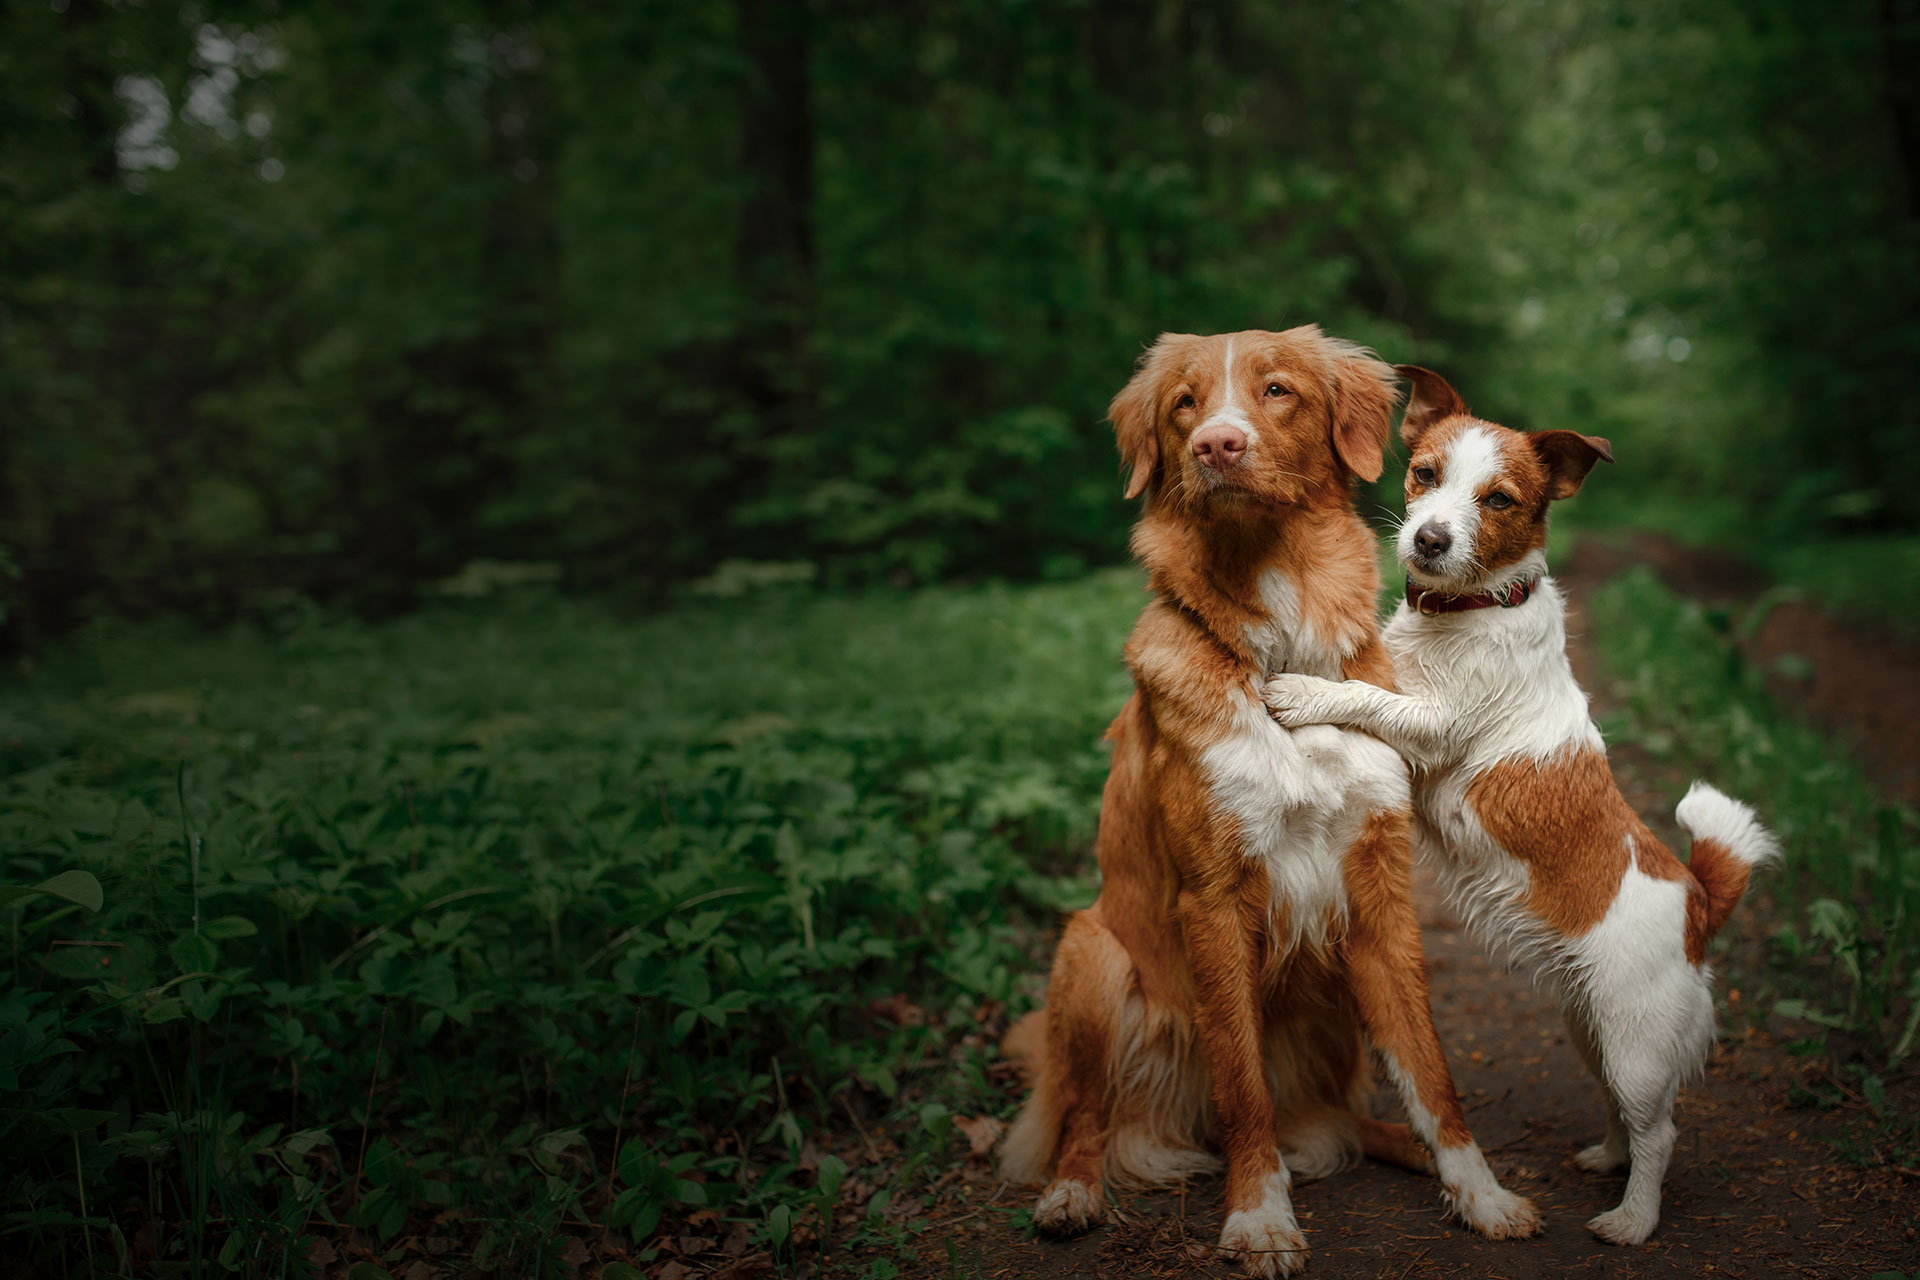 Dog Jack Russell Terrier and Nova Scotia Duck Tolling Retriever walking white flowers in the orchard.